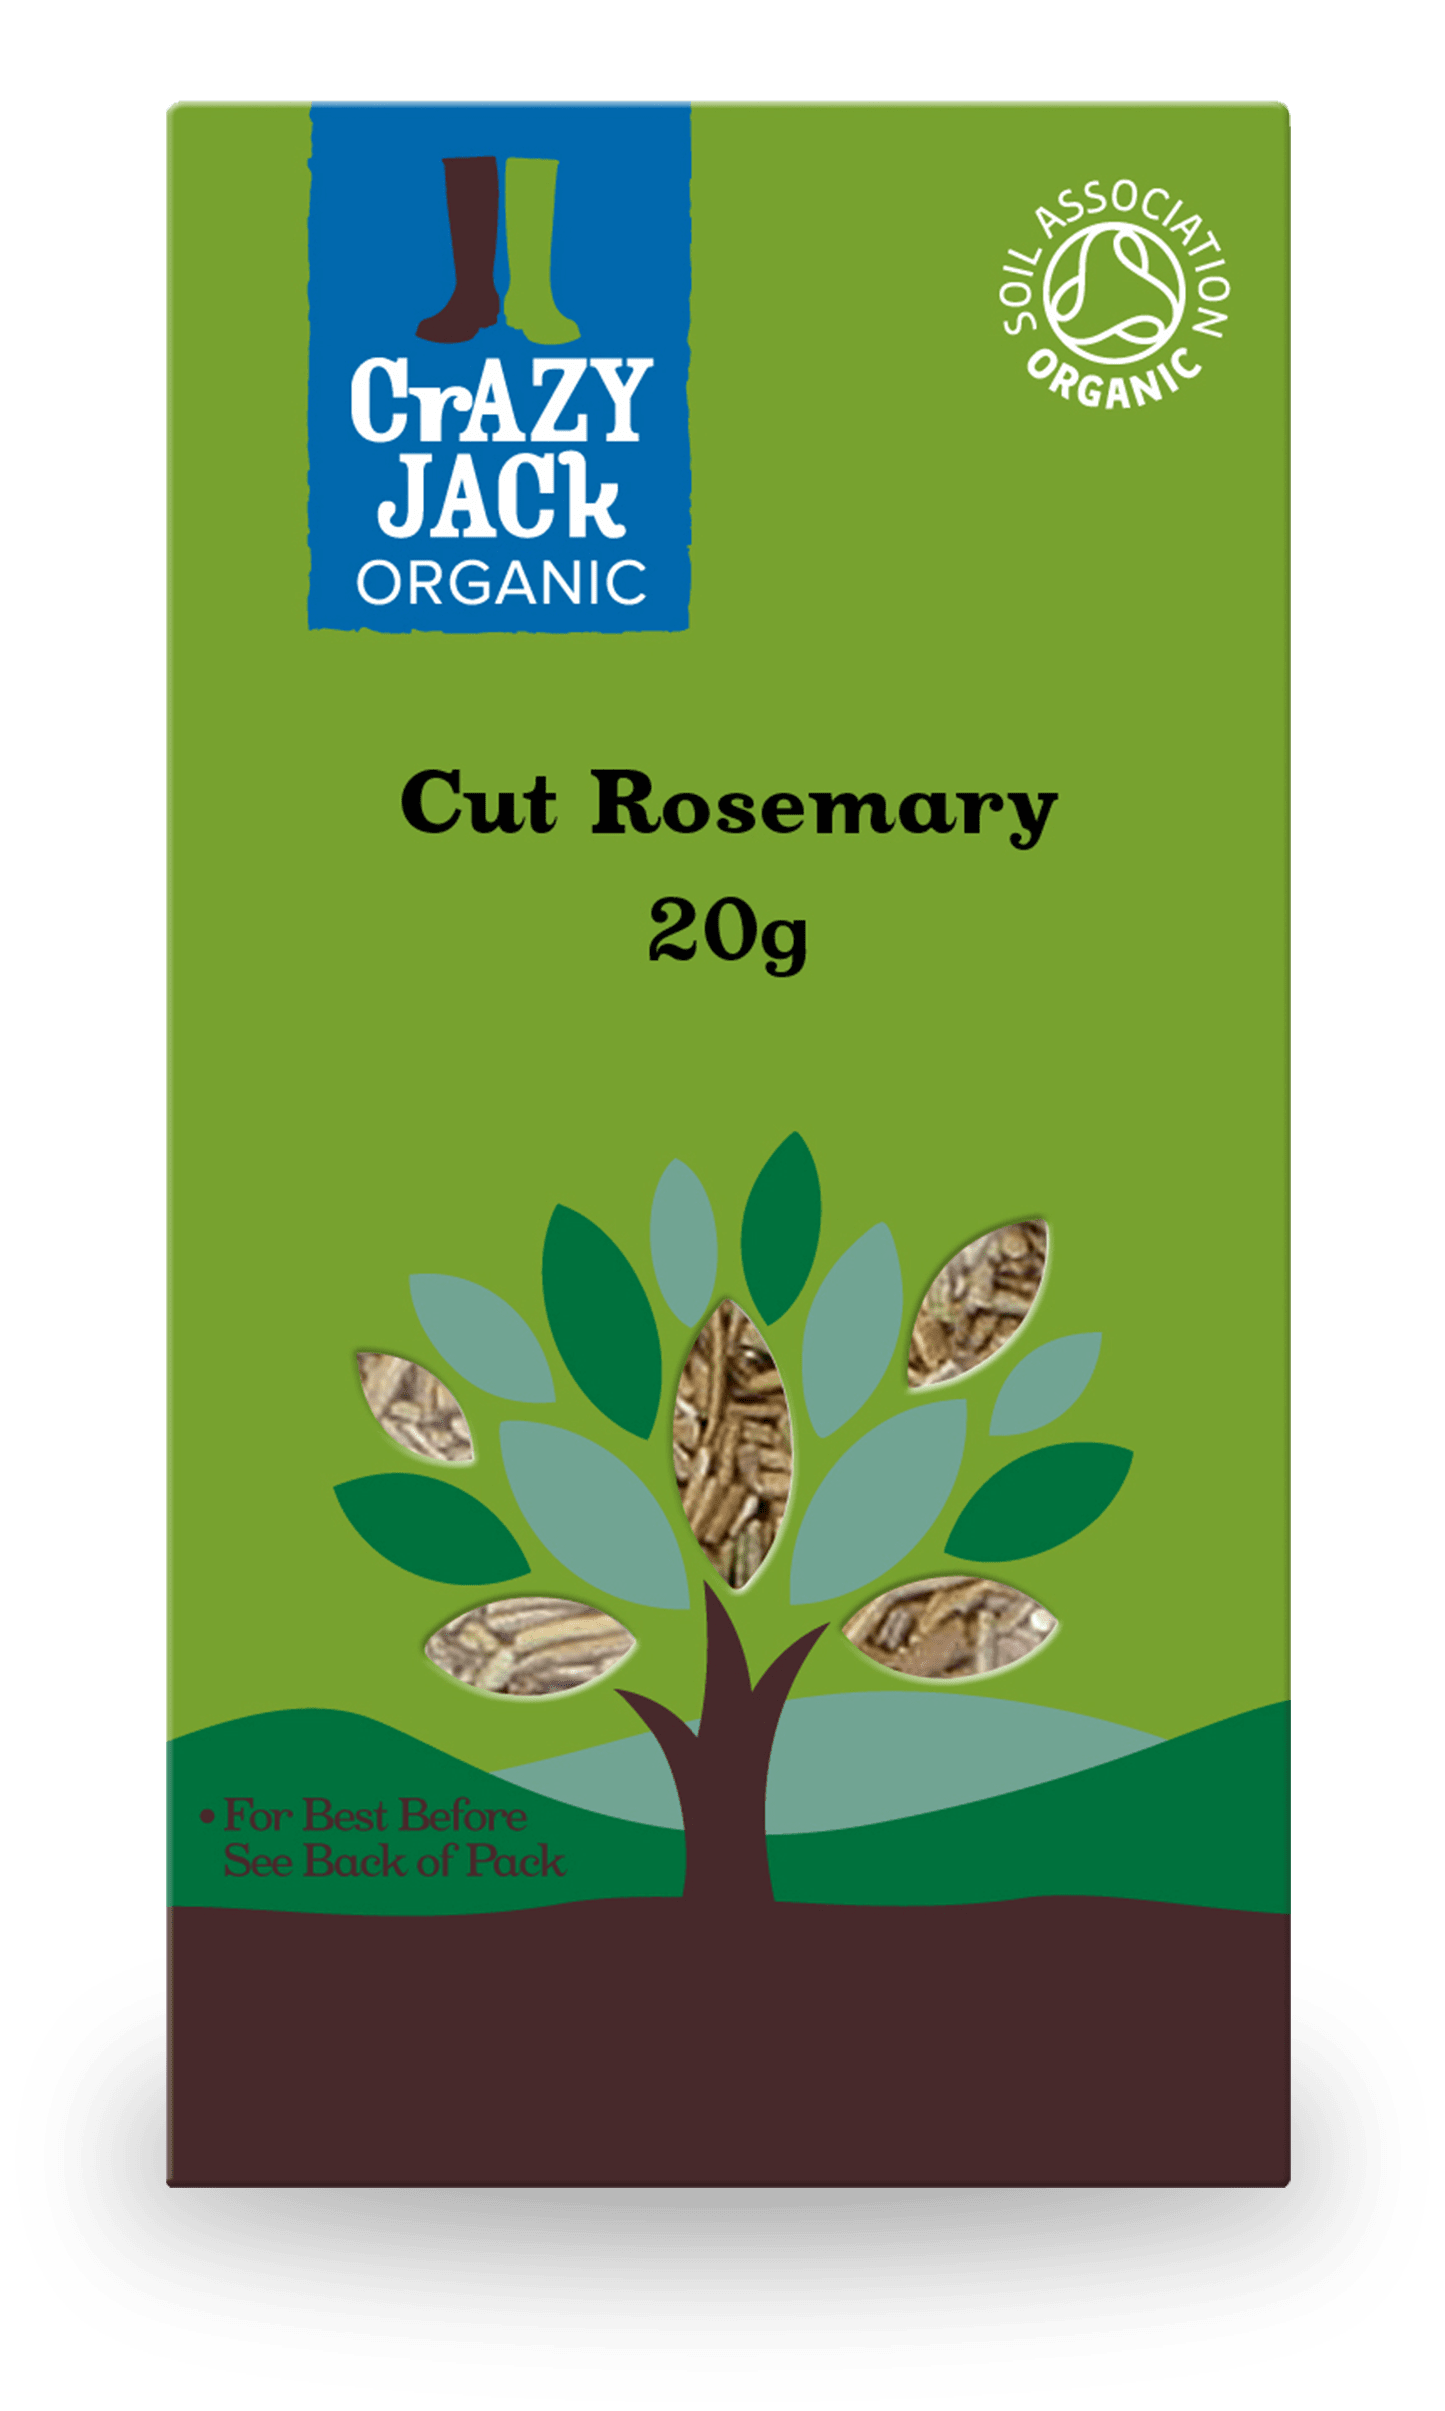 20g packet of cut rosemary